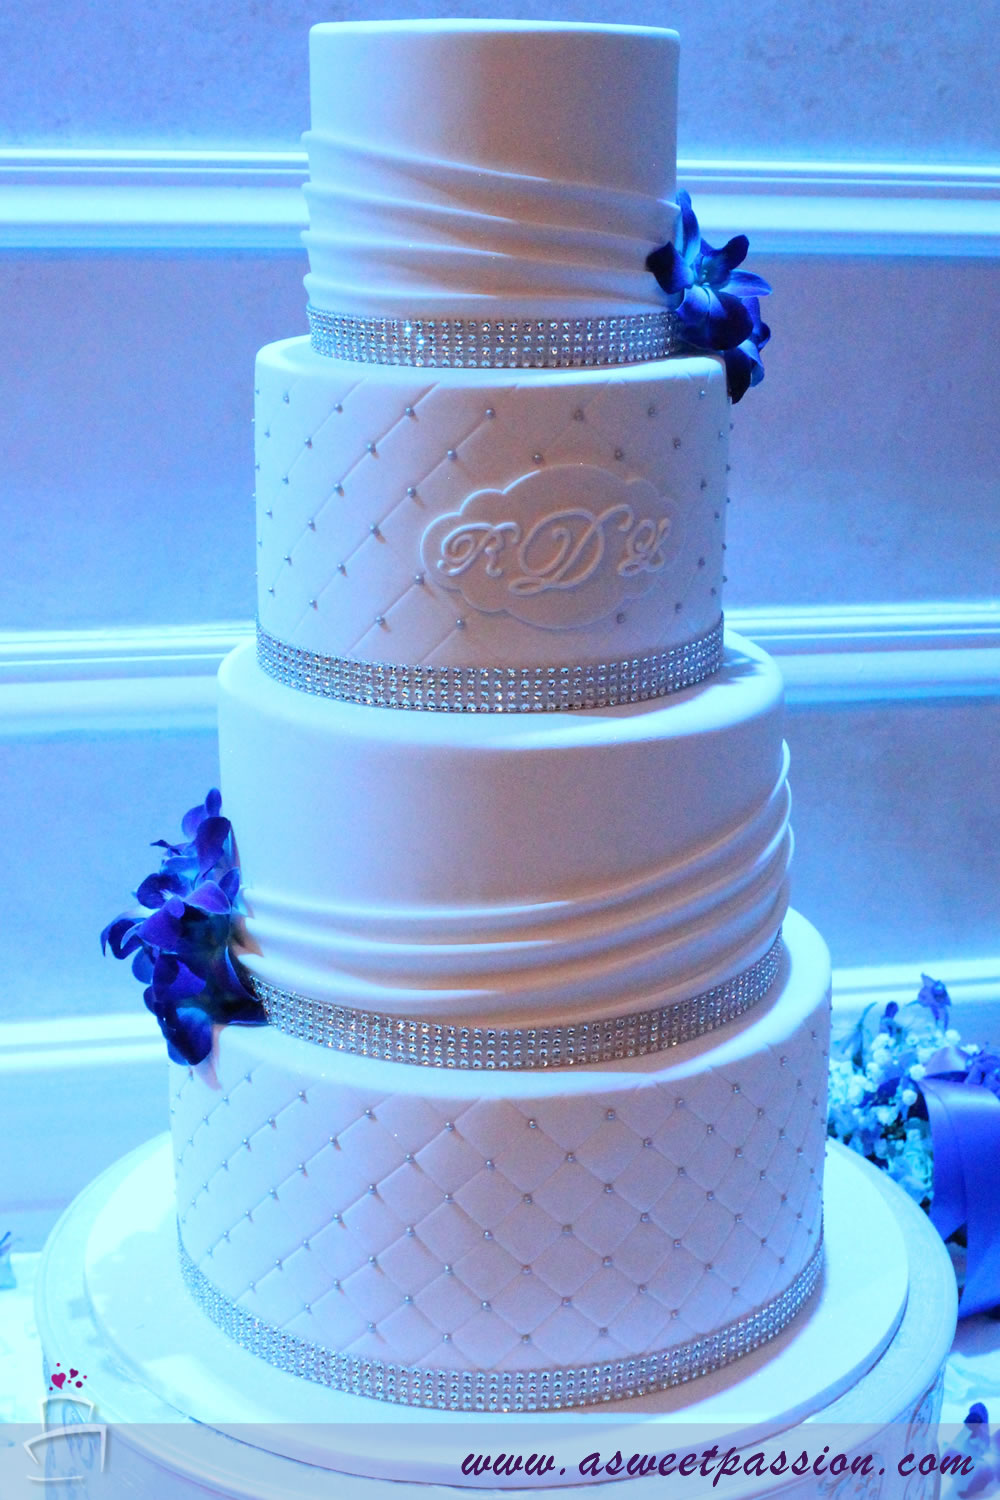 White Bling Wedding Cake     Sweet Passion Cakery White Bling Wedding Cake